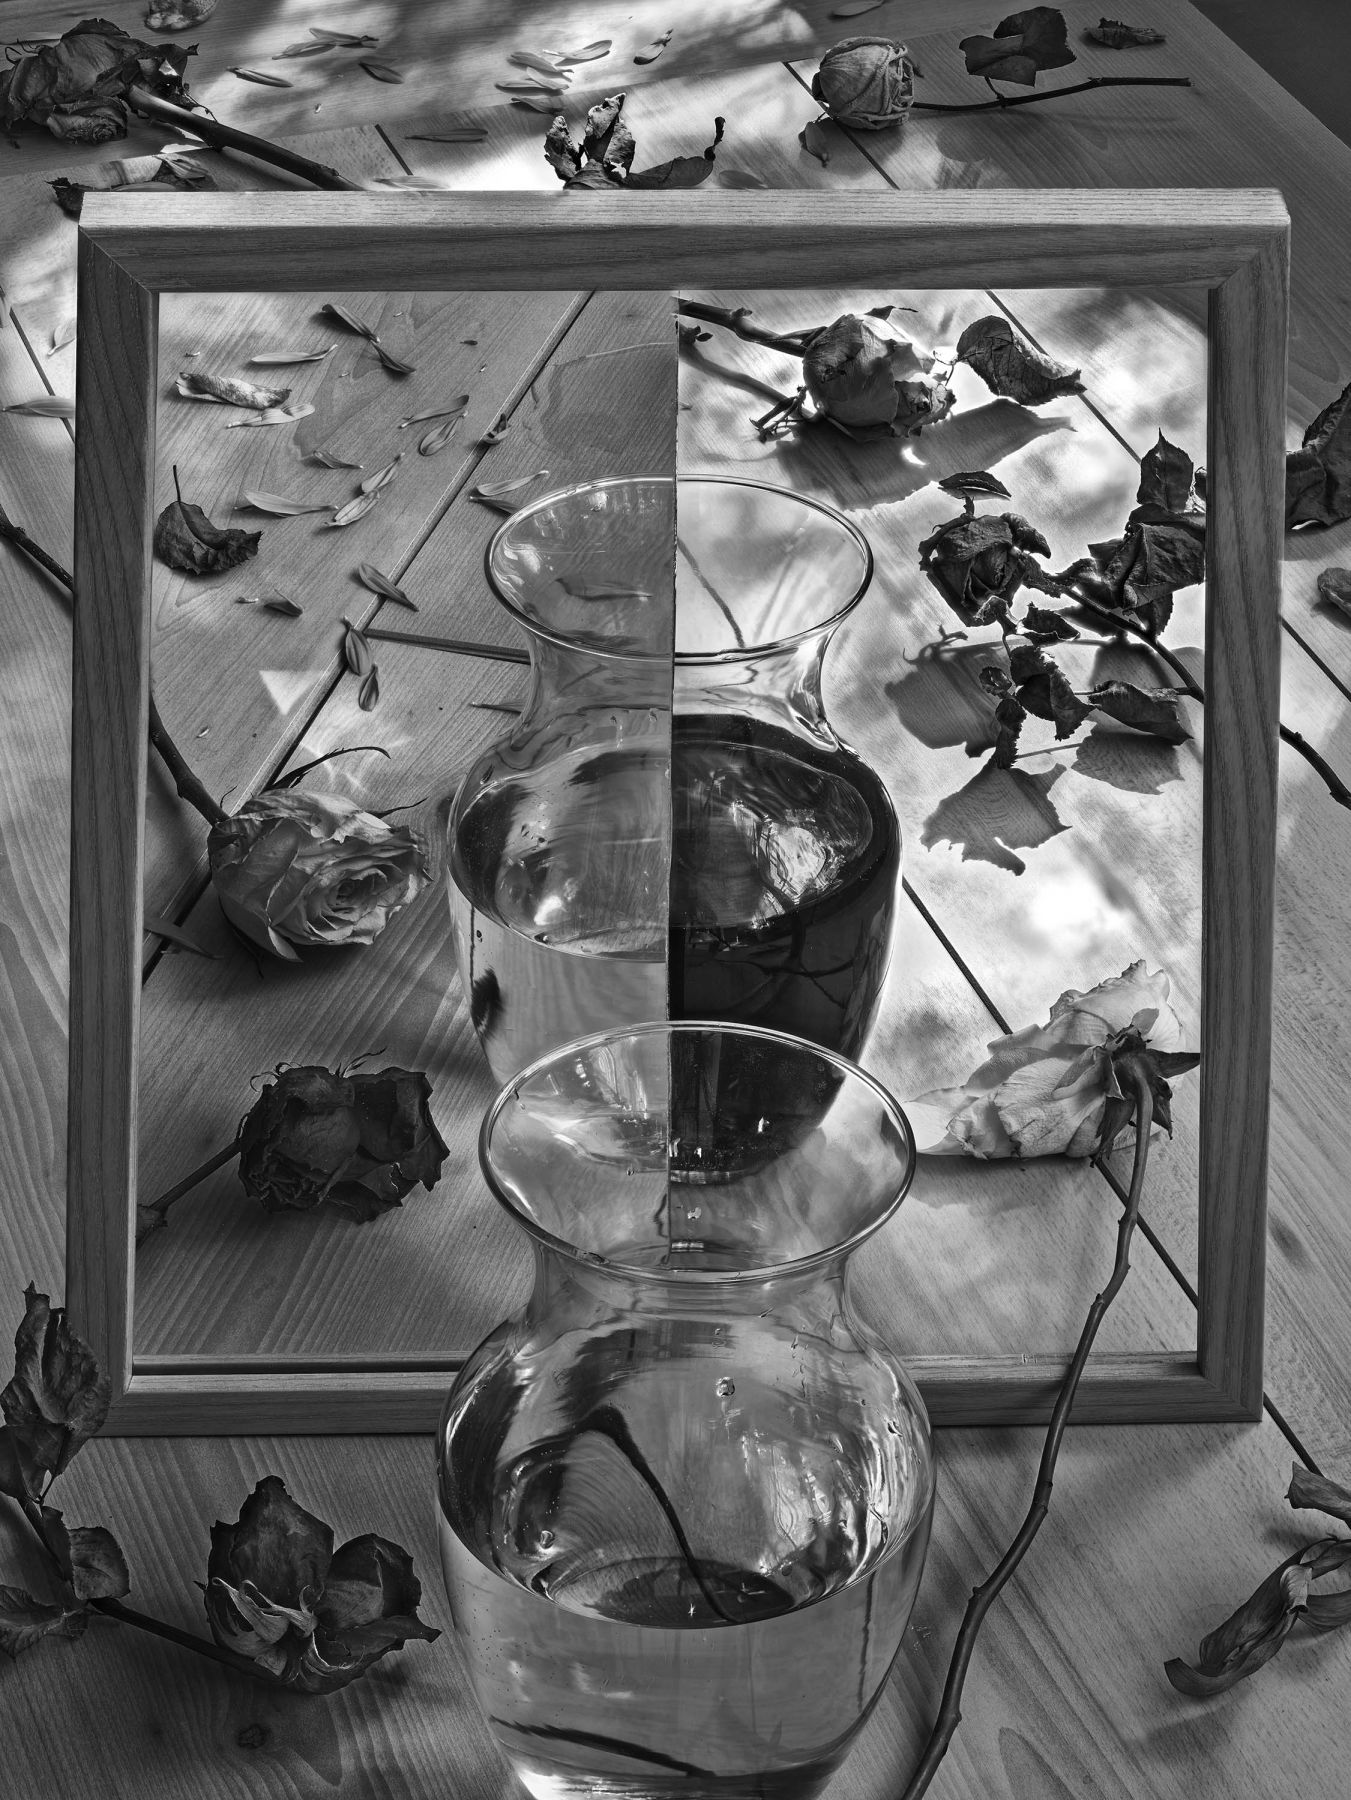 abelado morell, flowers for lisa #66 - after lewis carroll